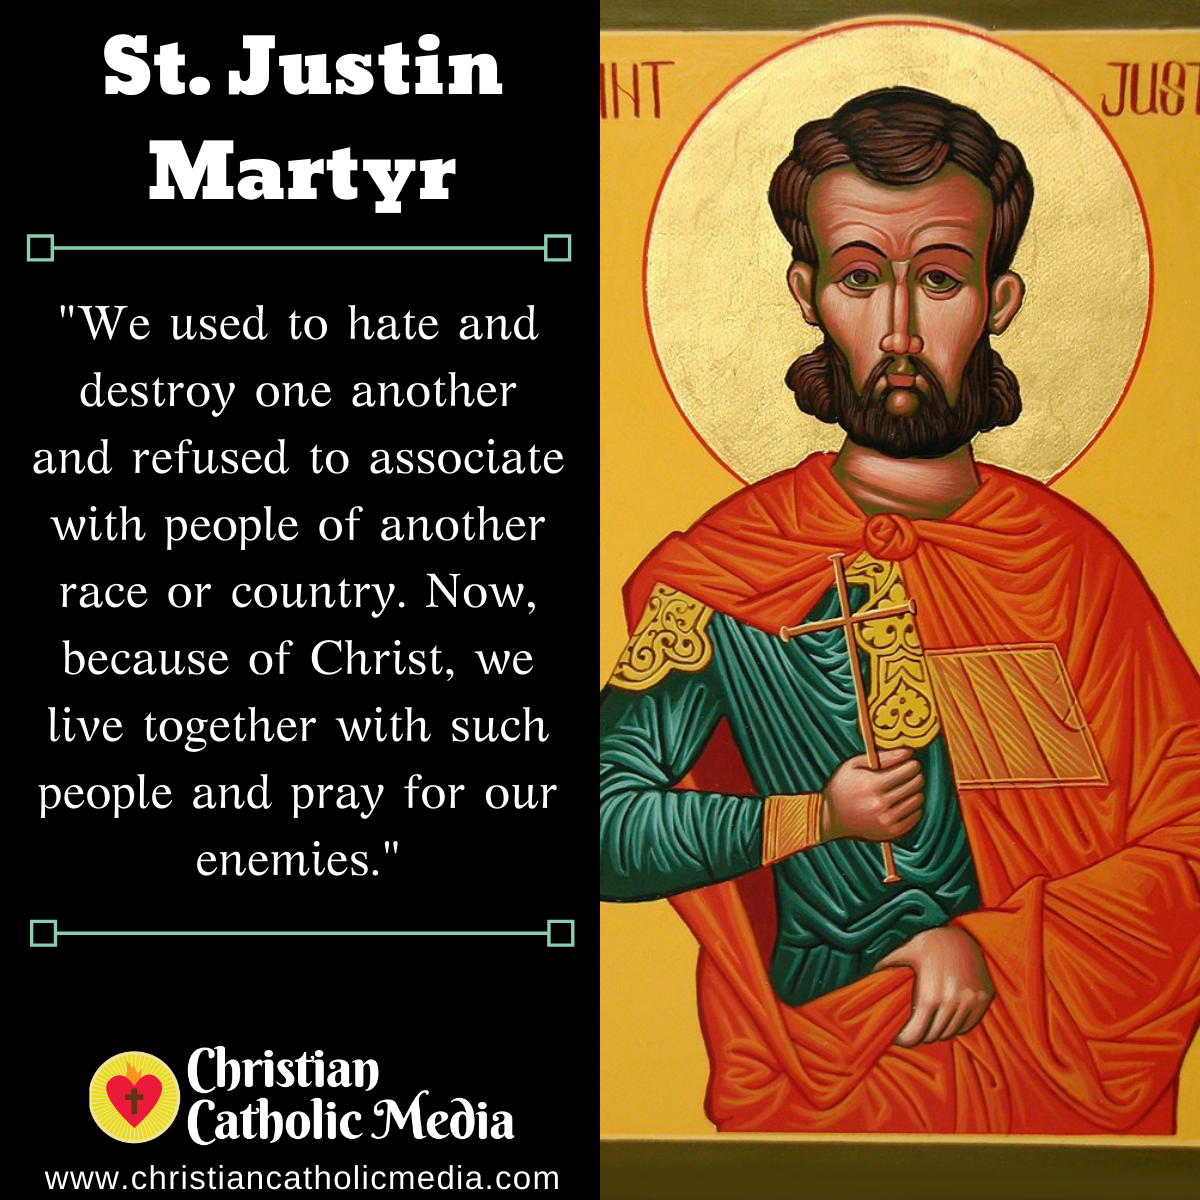 St. Justin Martyr - Tuesday June 1, 2021